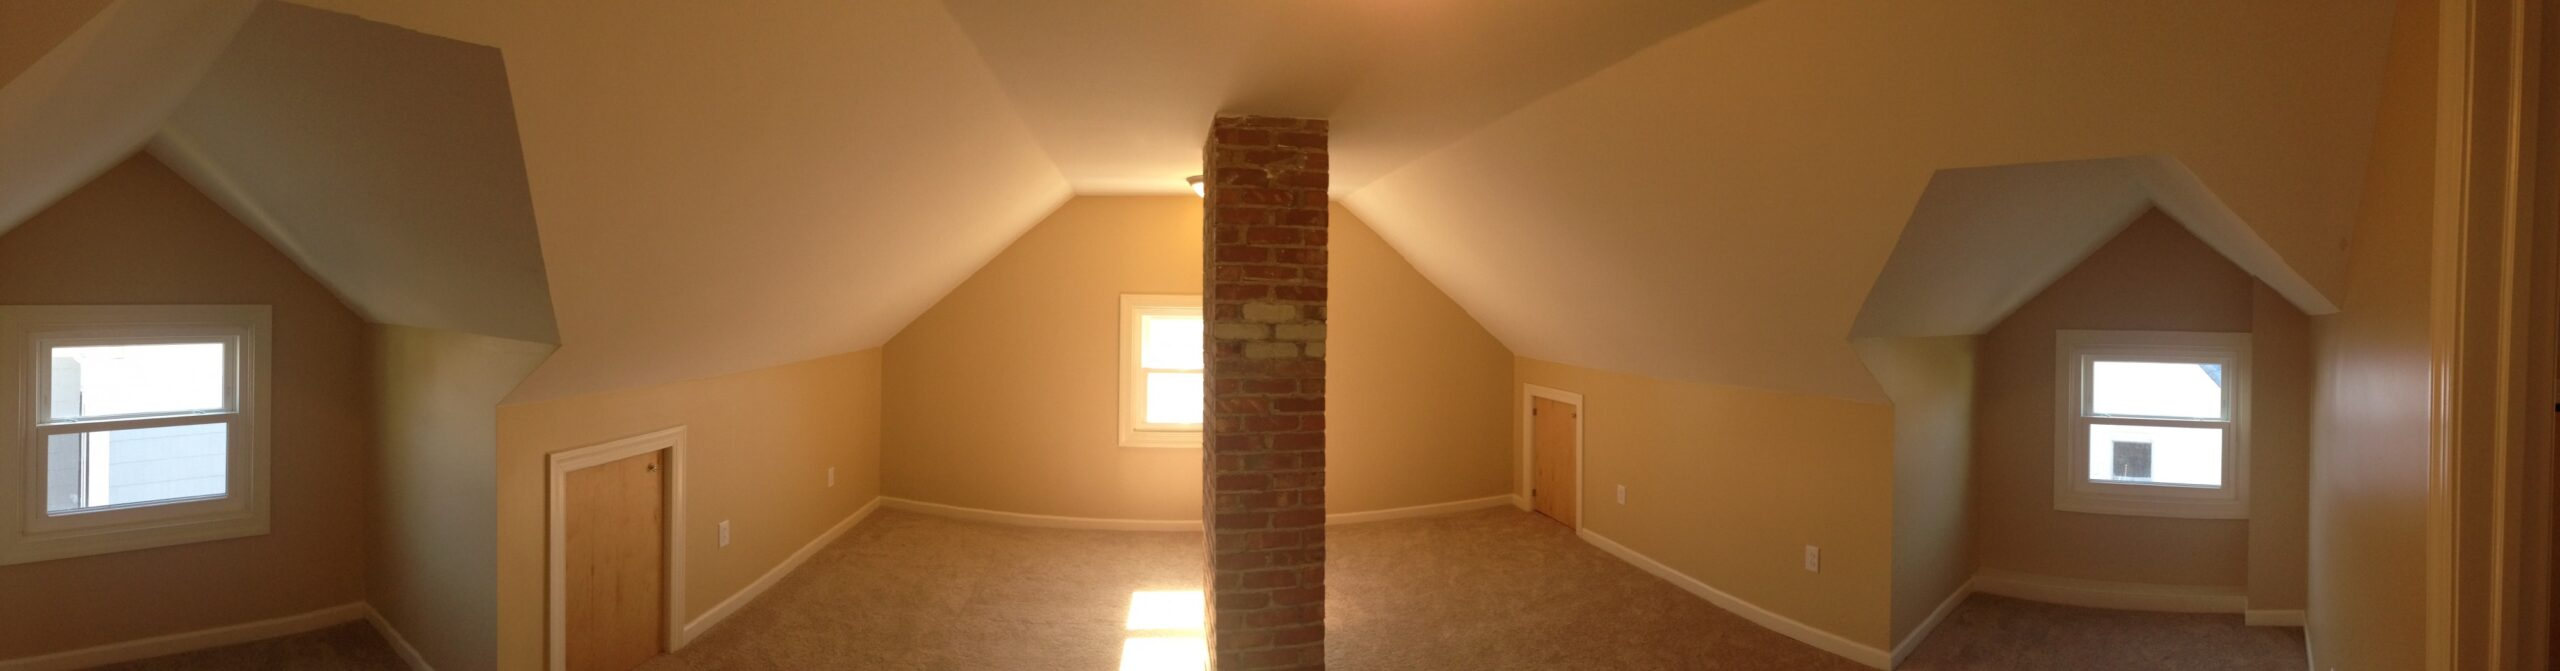 Check out how we renovated out ugly attic into an AMAZING 500 sq ft Office!